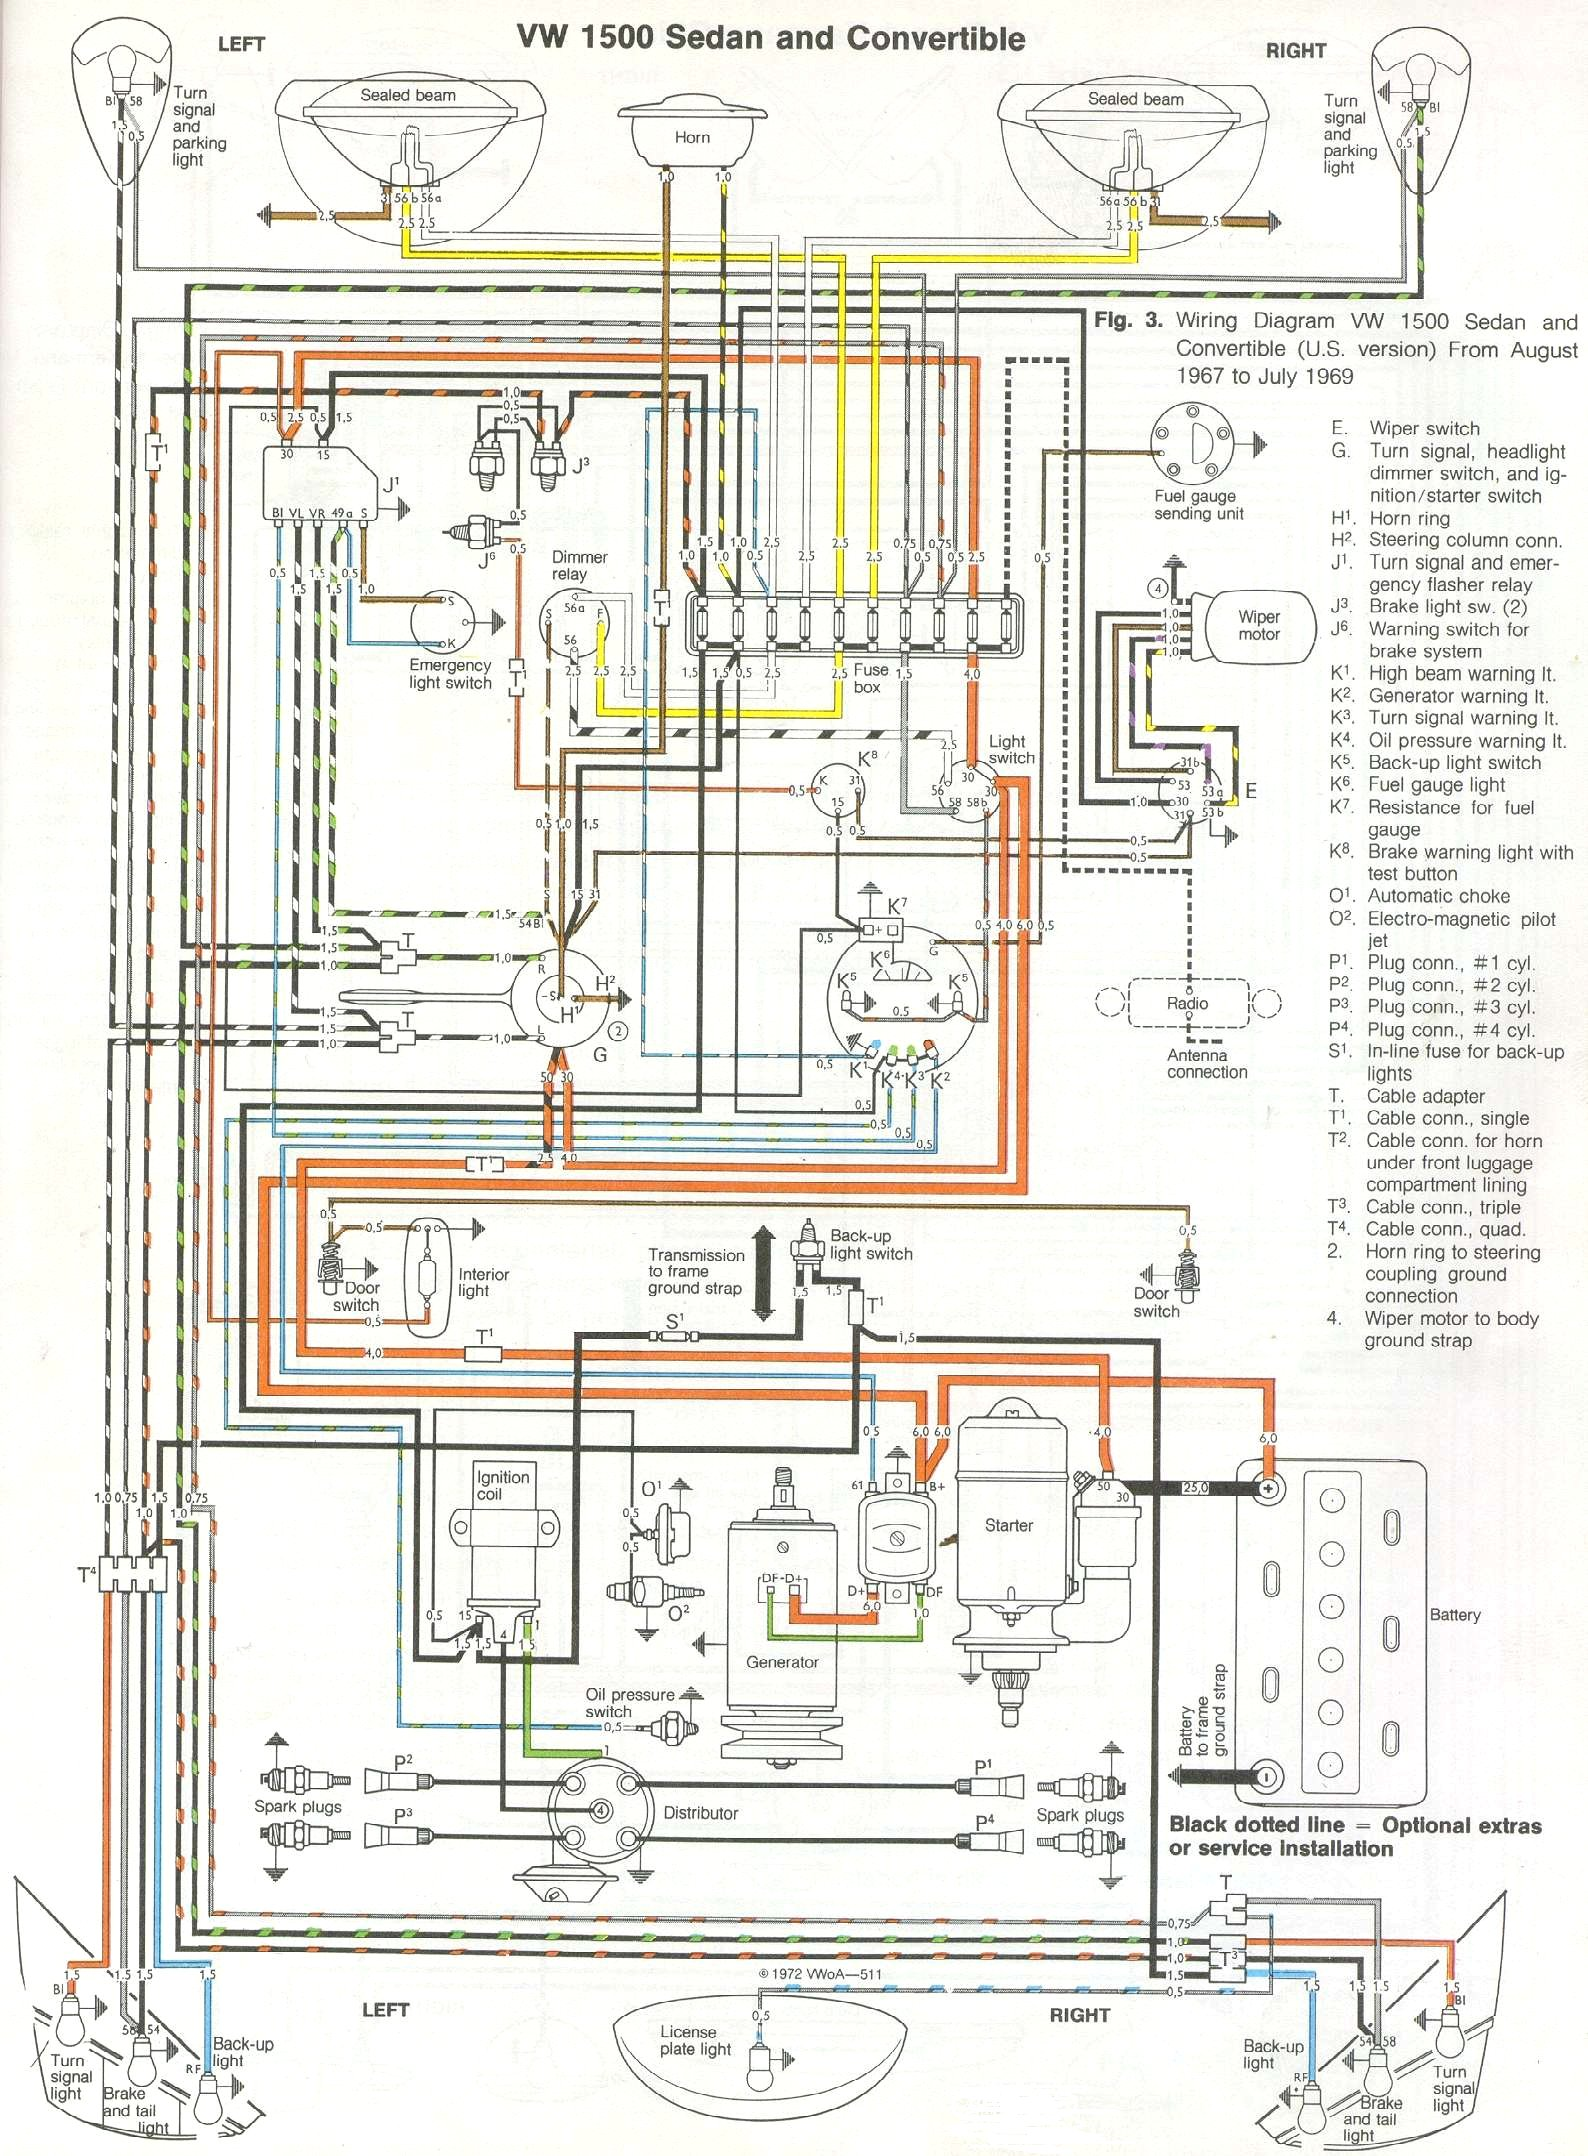 bug_6869 1969 71 beetle wiring diagram thegoldenbug com 1970 vw bug wiring diagram at readyjetset.co